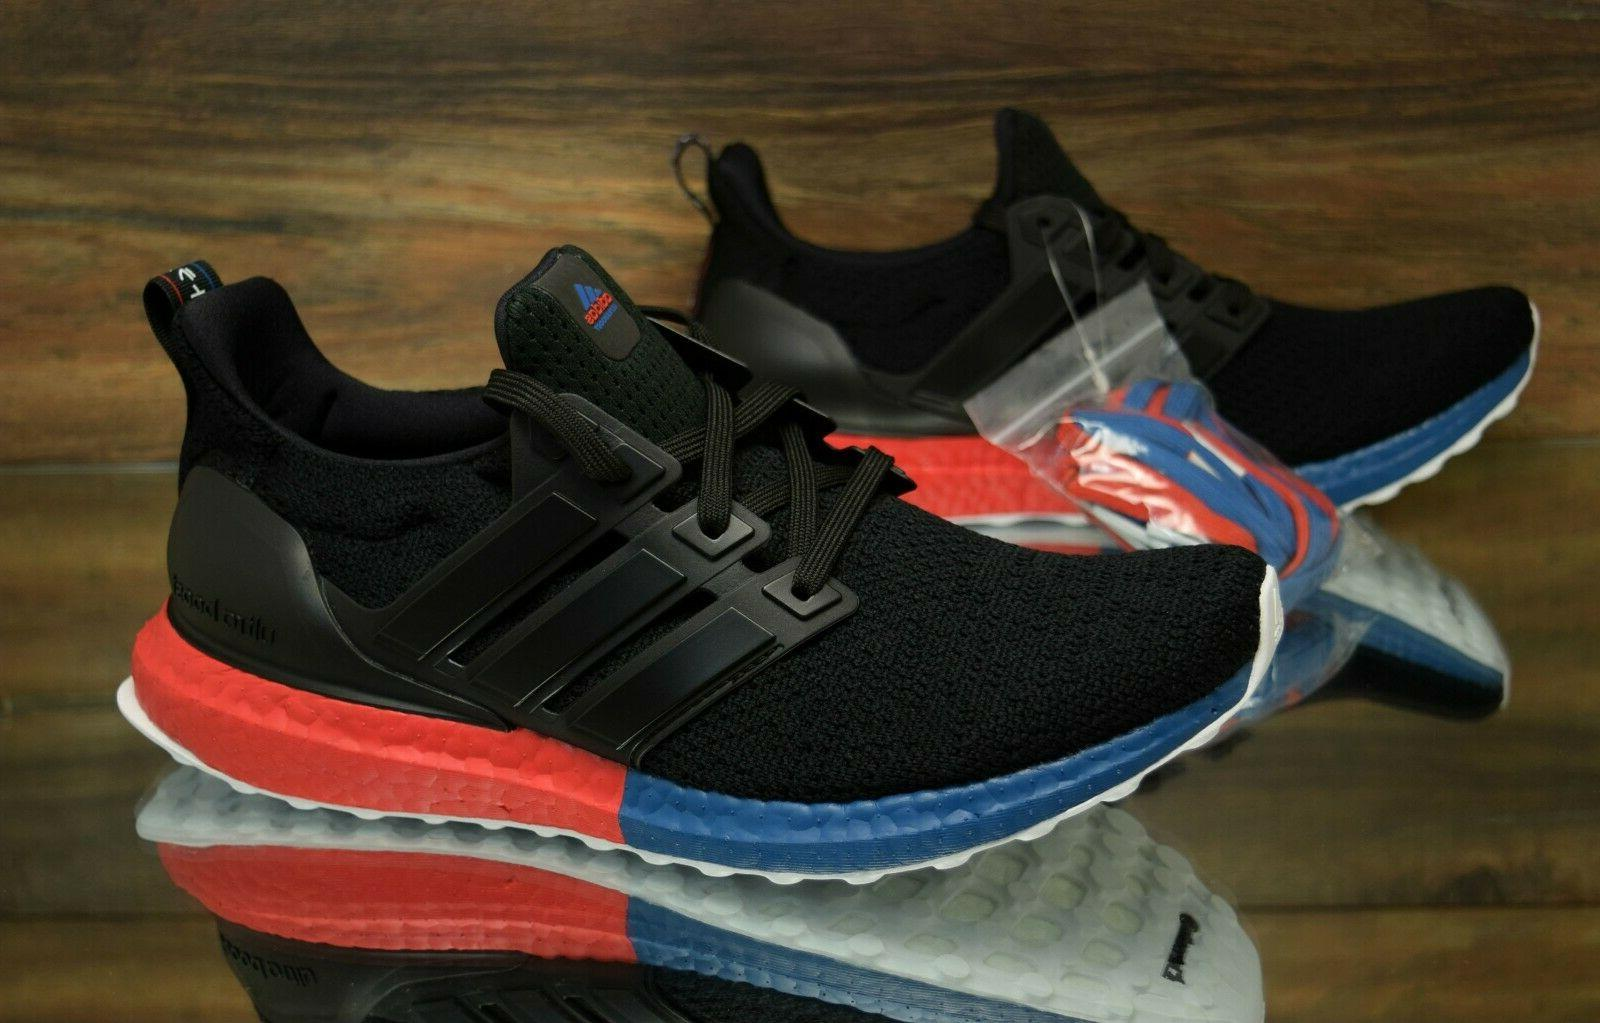 adidas Ultraboost DNA Black Red Blue FX7236 Running Shoes Me